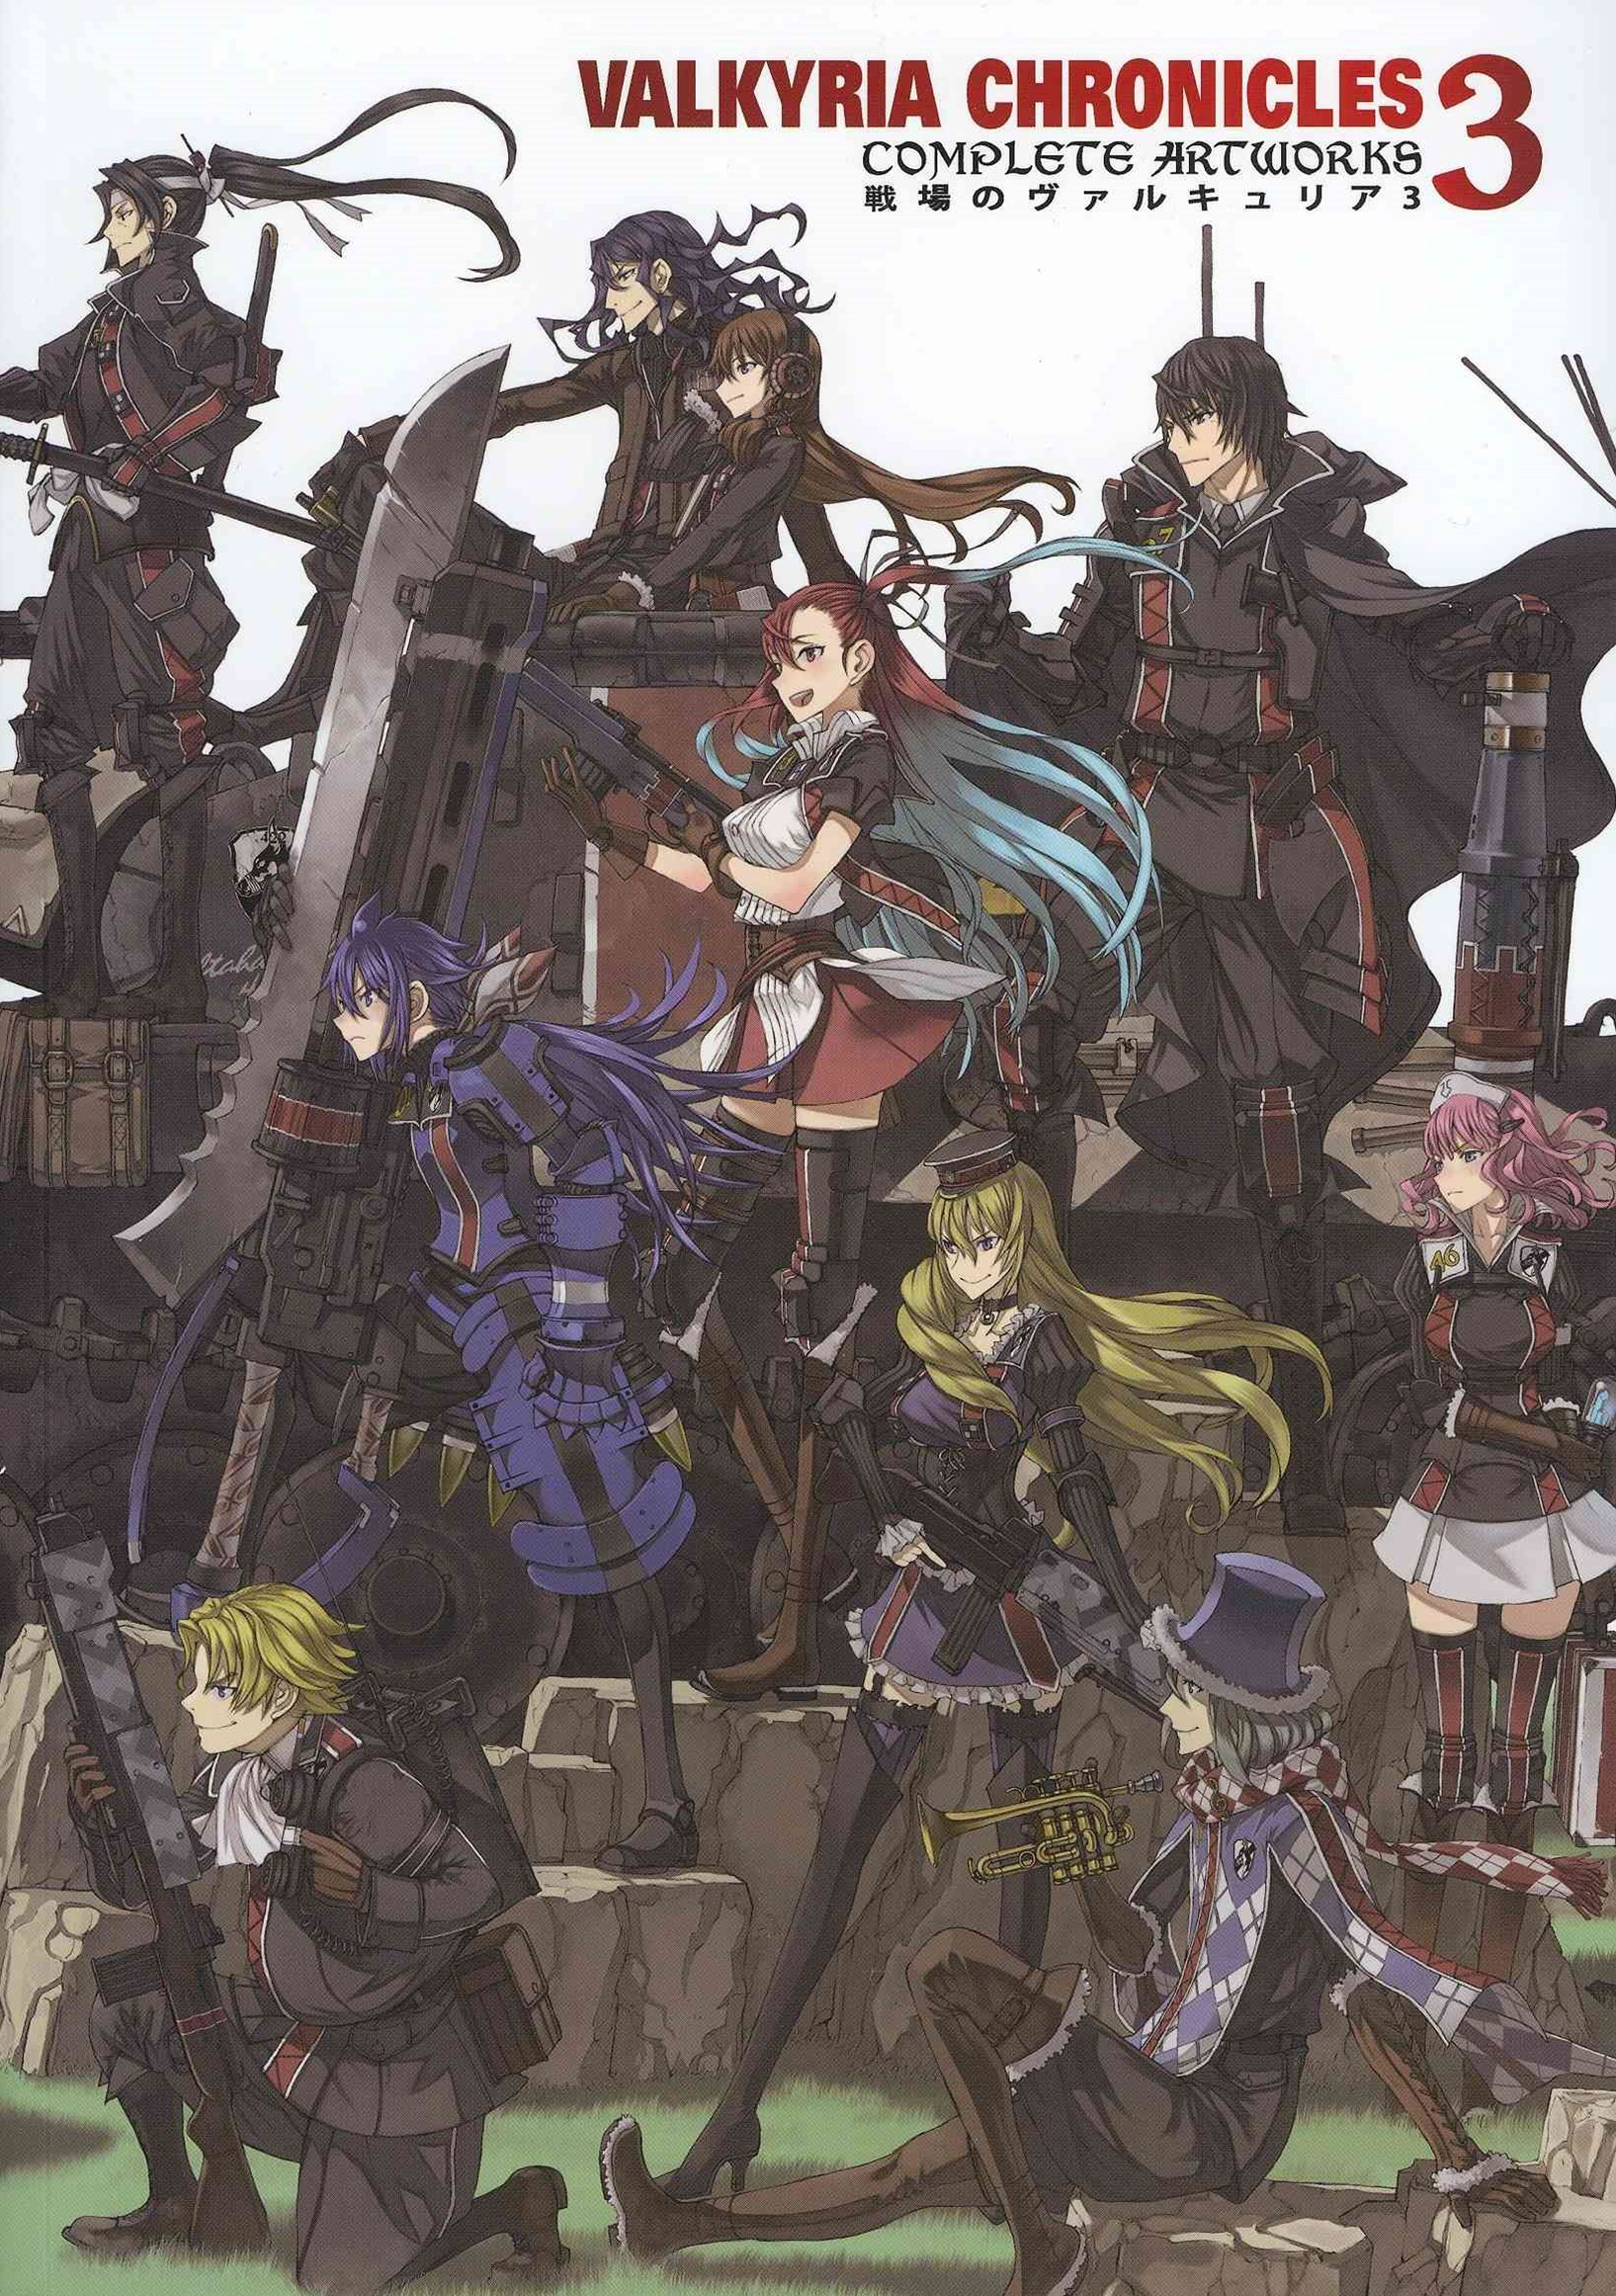 Valkyria Chronicles - Complete Artworks